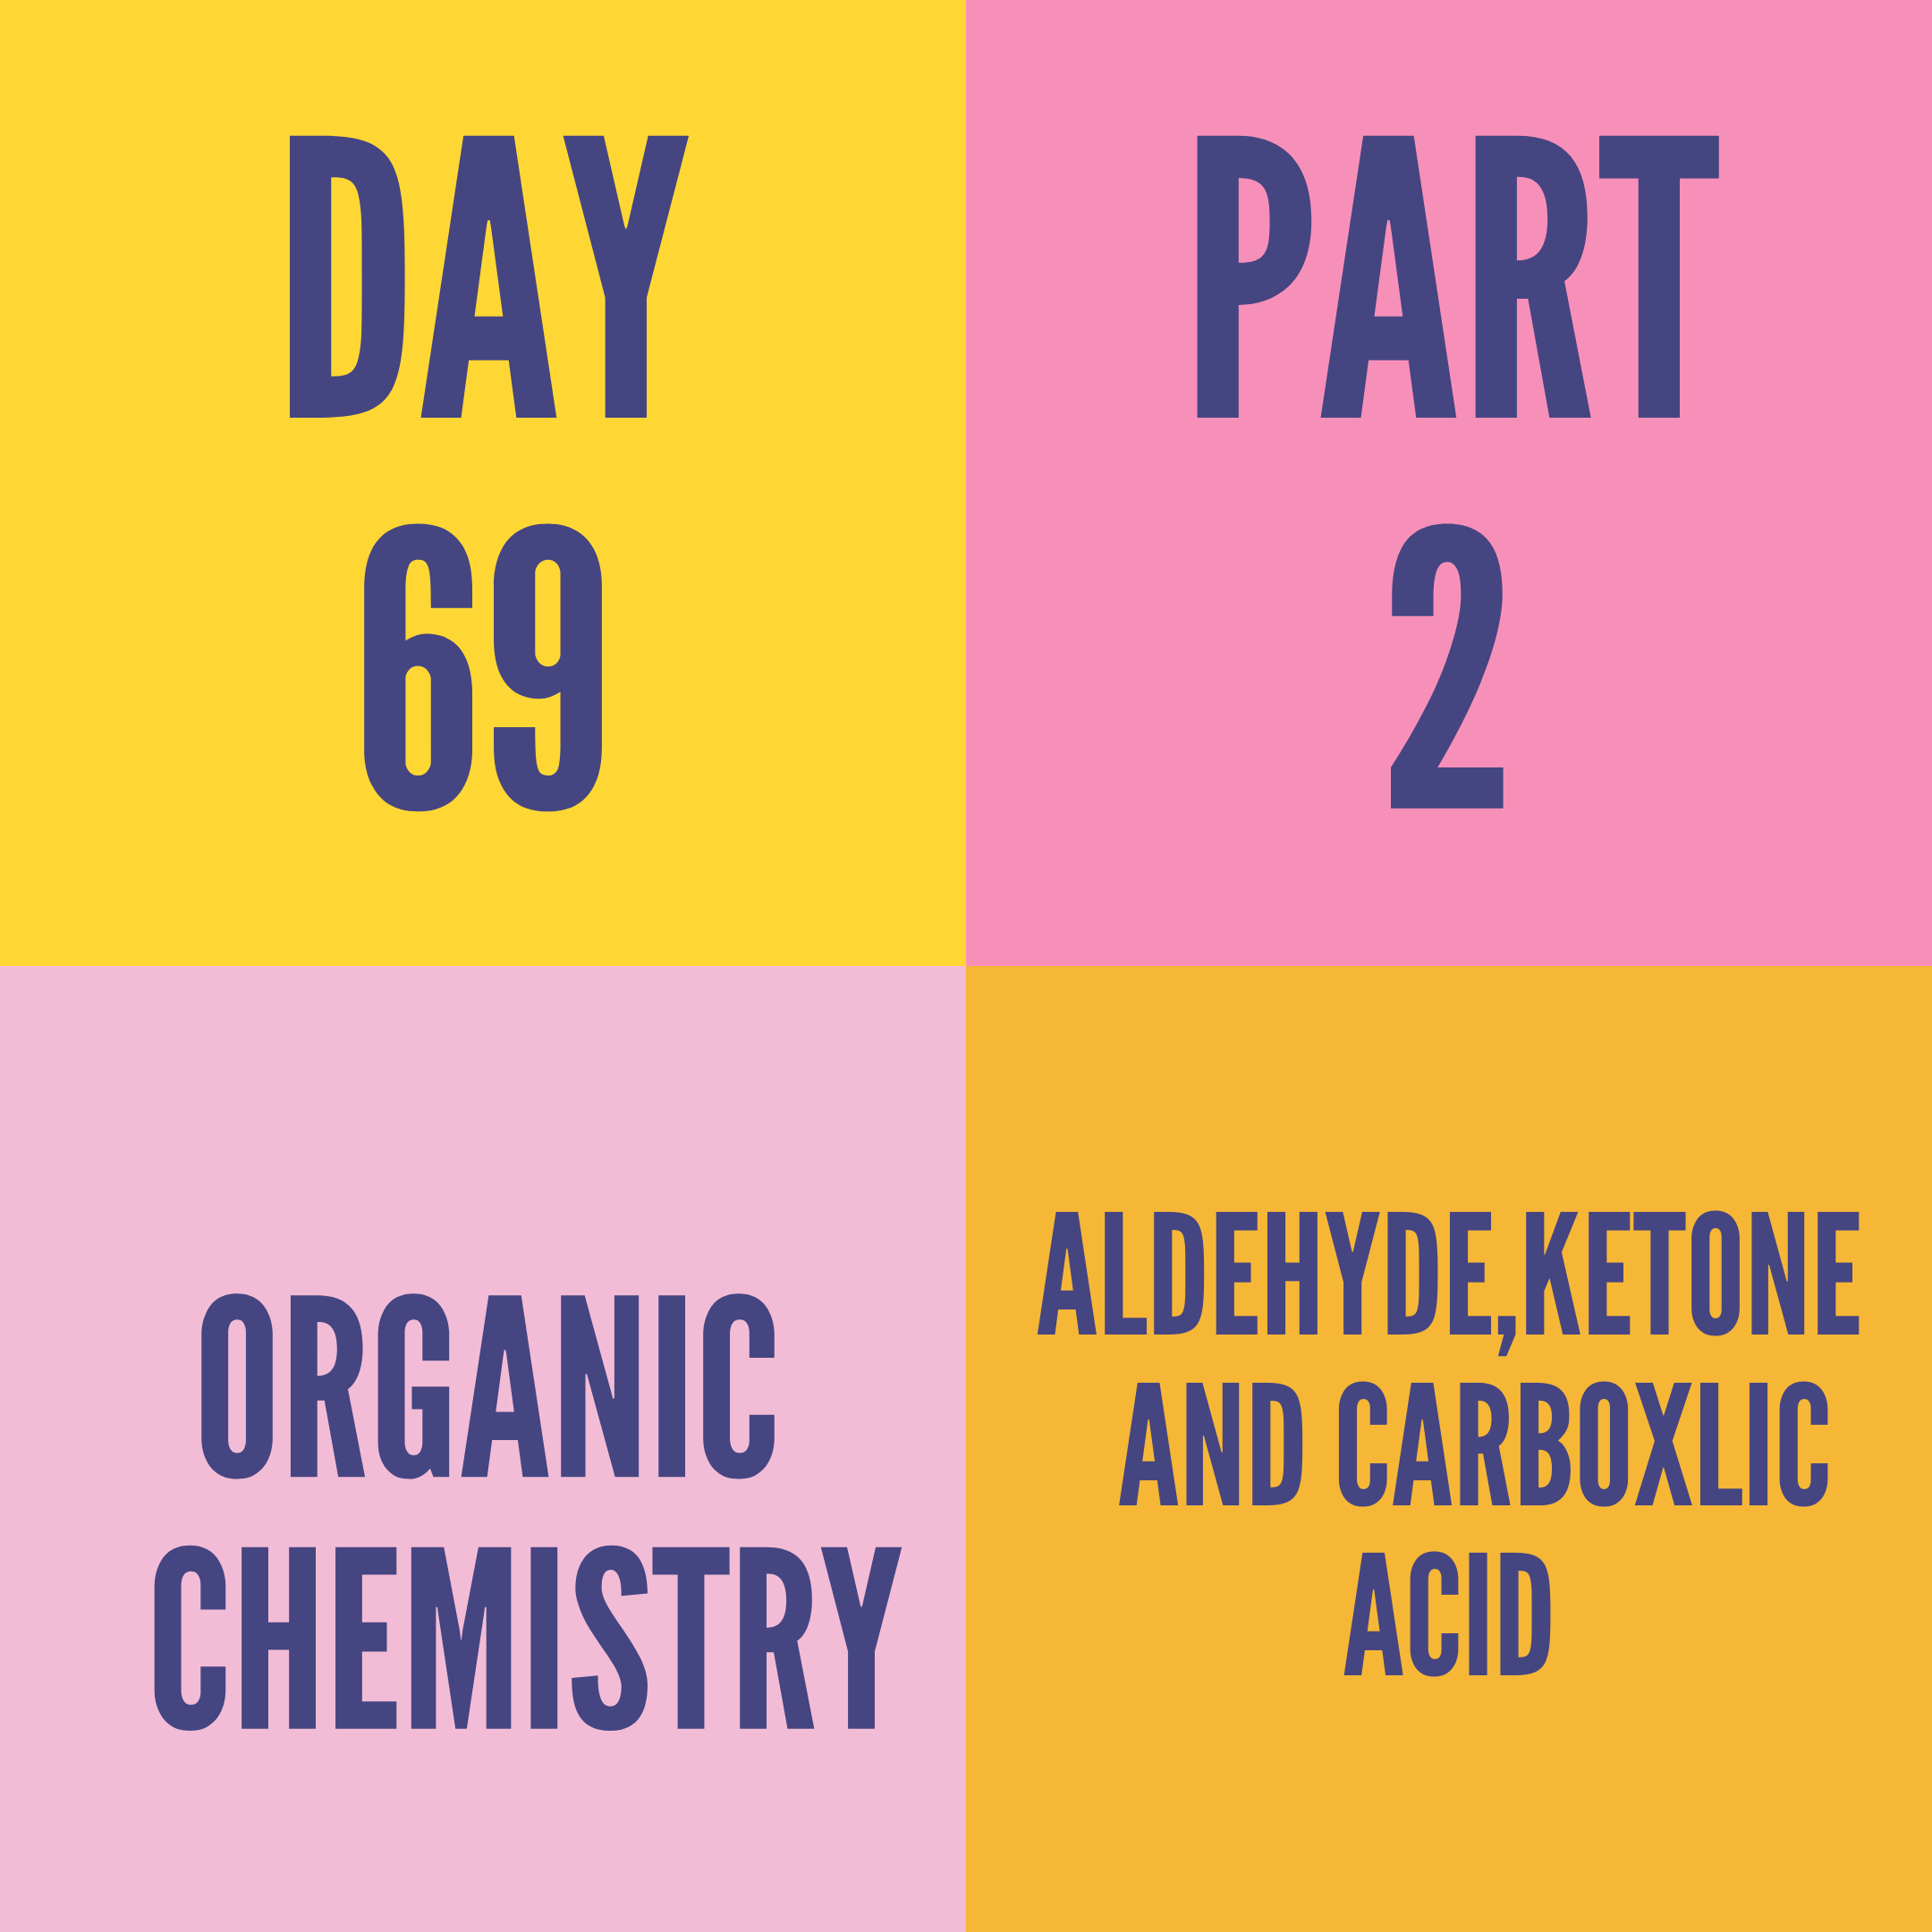 DAY-69 PART-2 ALDEHYDE,KETONE AND CARBOXLIC ACID